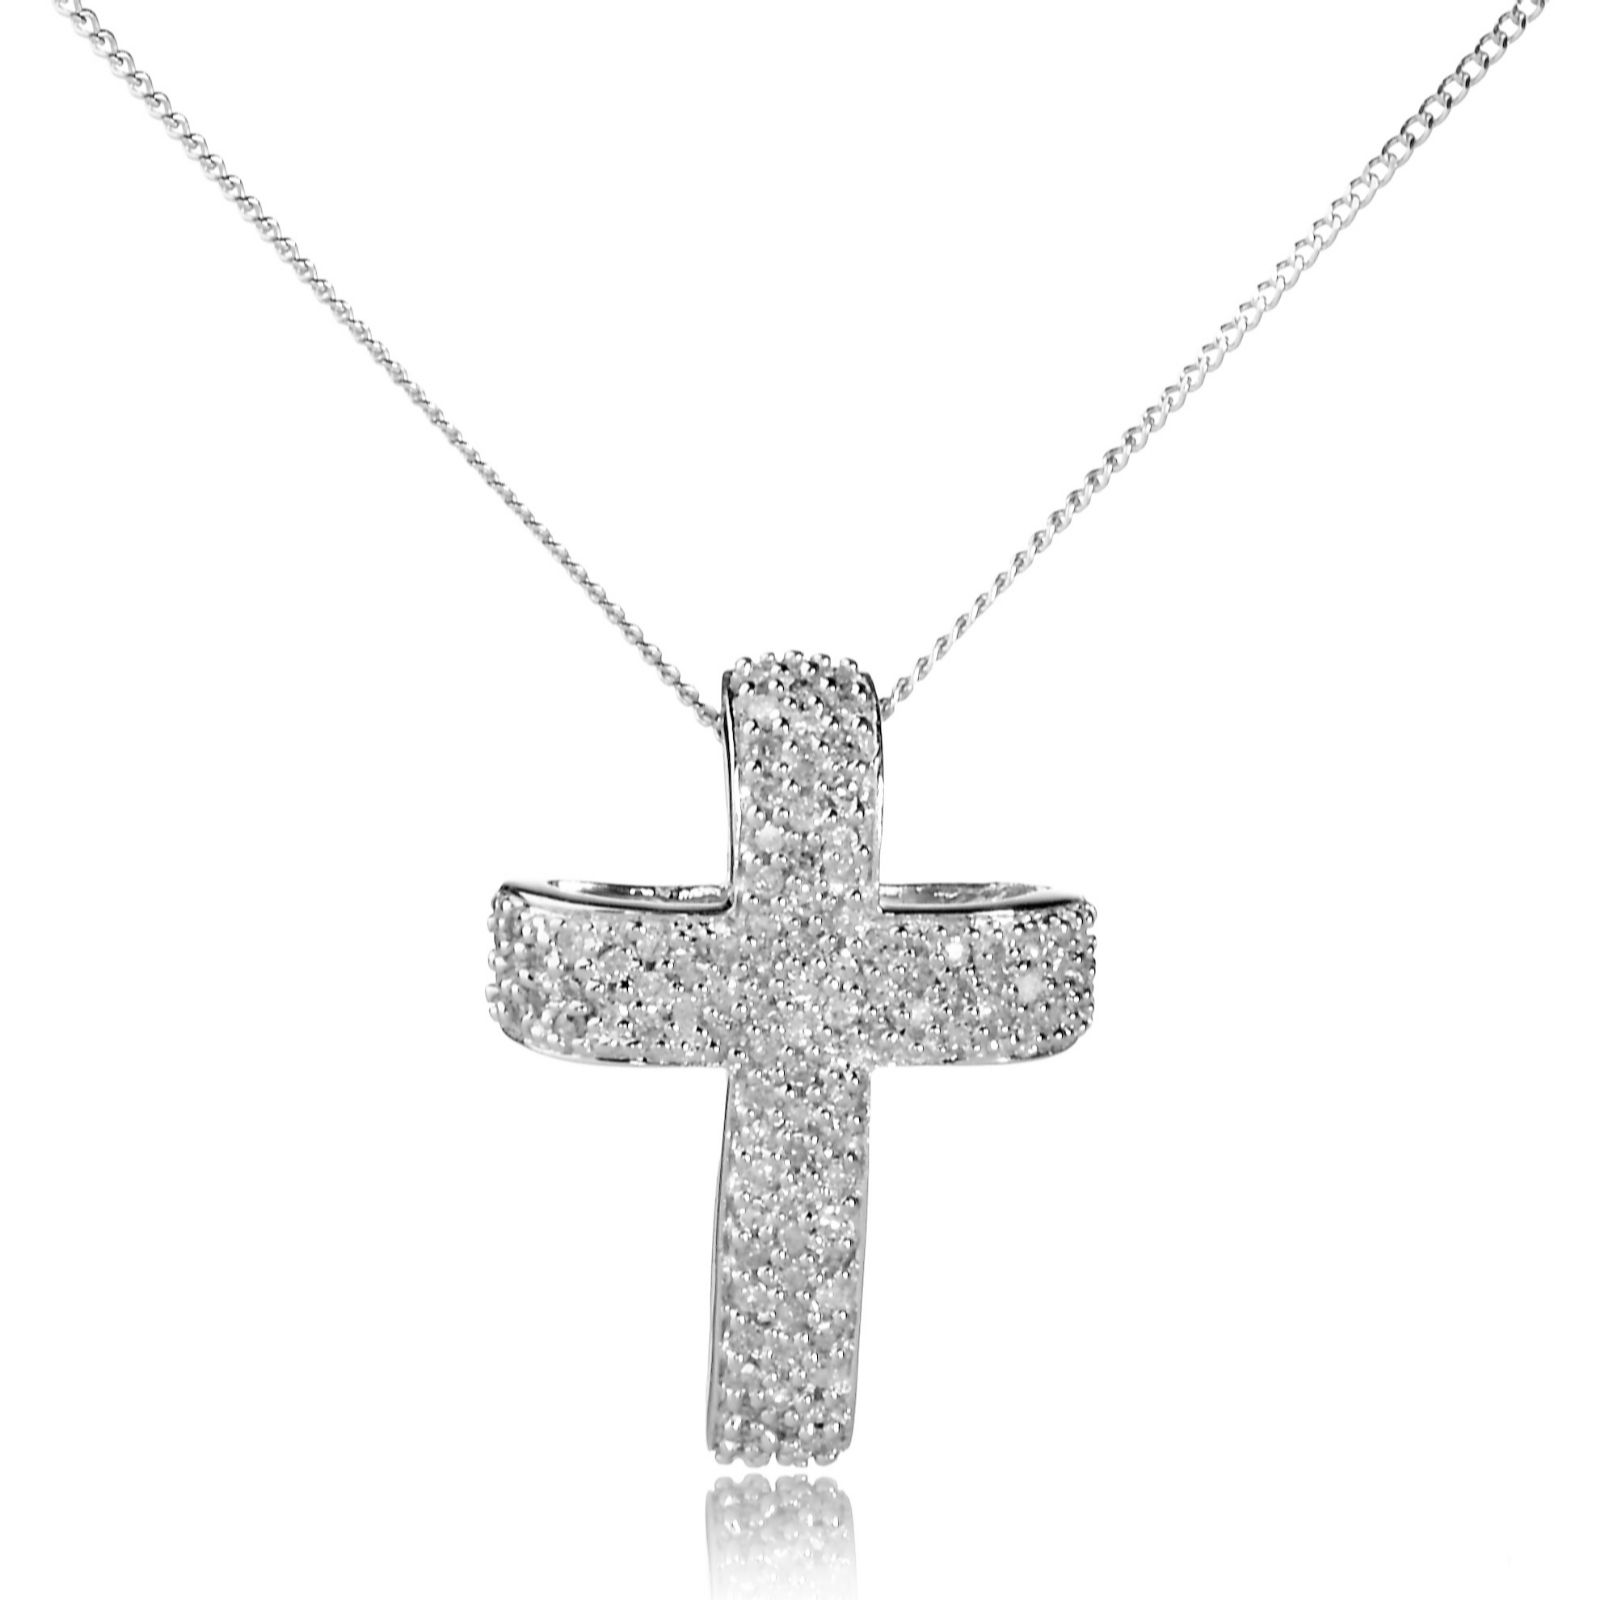 f84d4d24ec962 0.25ct Diamond Cross Pendant   Chain 9ct White Gold - QVC UK